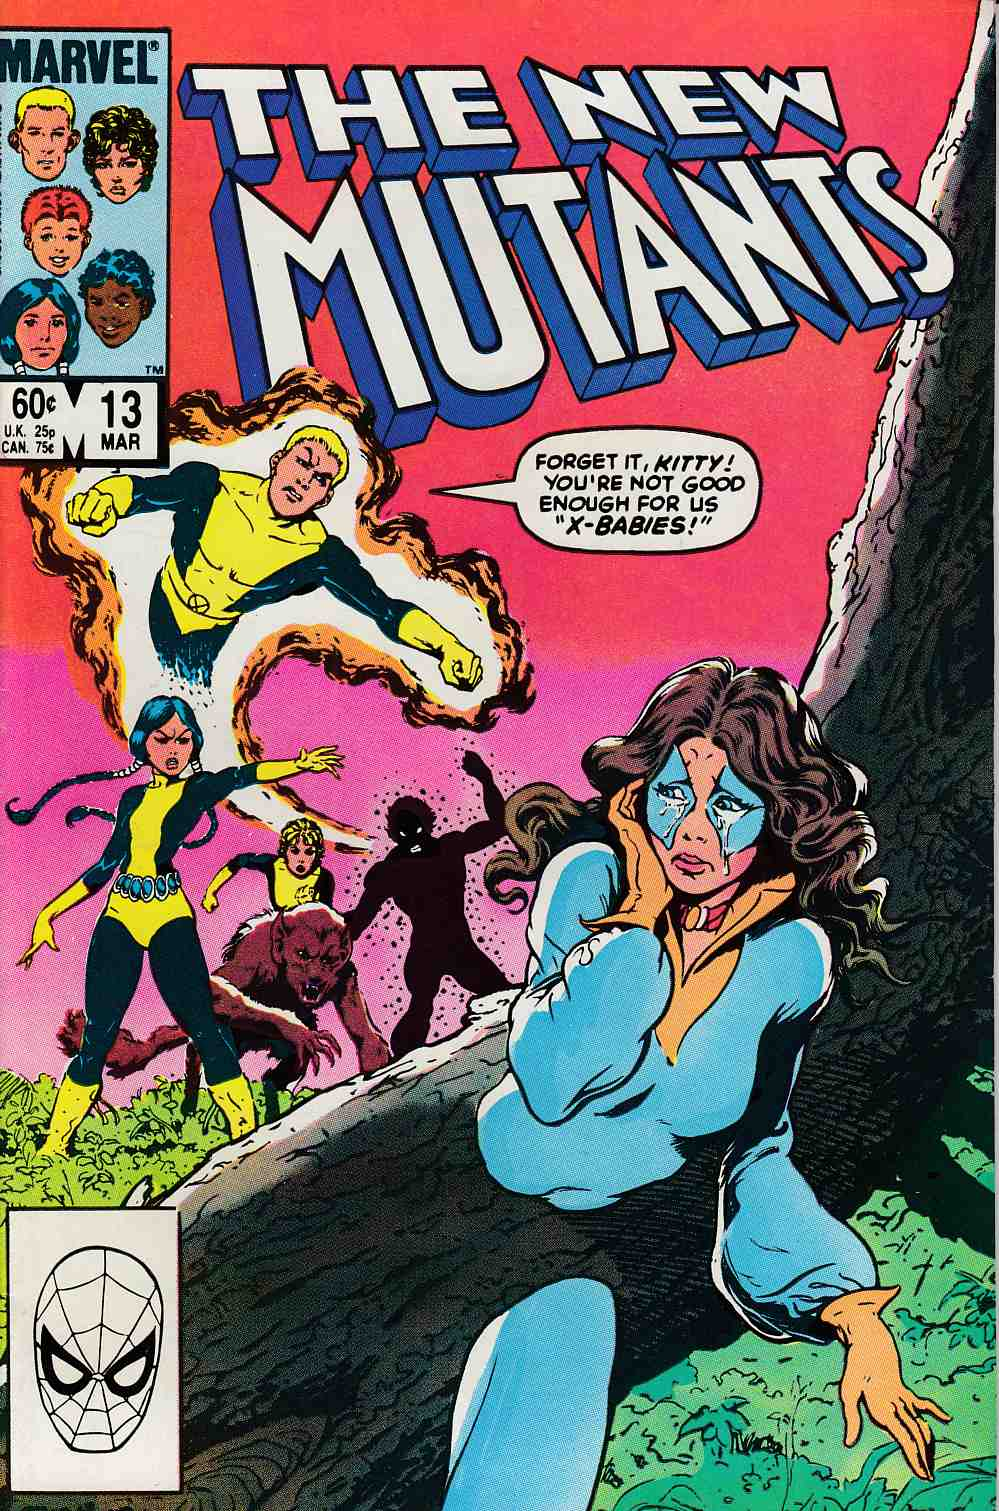 New Mutants #13 Very Fine/Near Mint (9.0) [Marvel Comic] THUMBNAIL